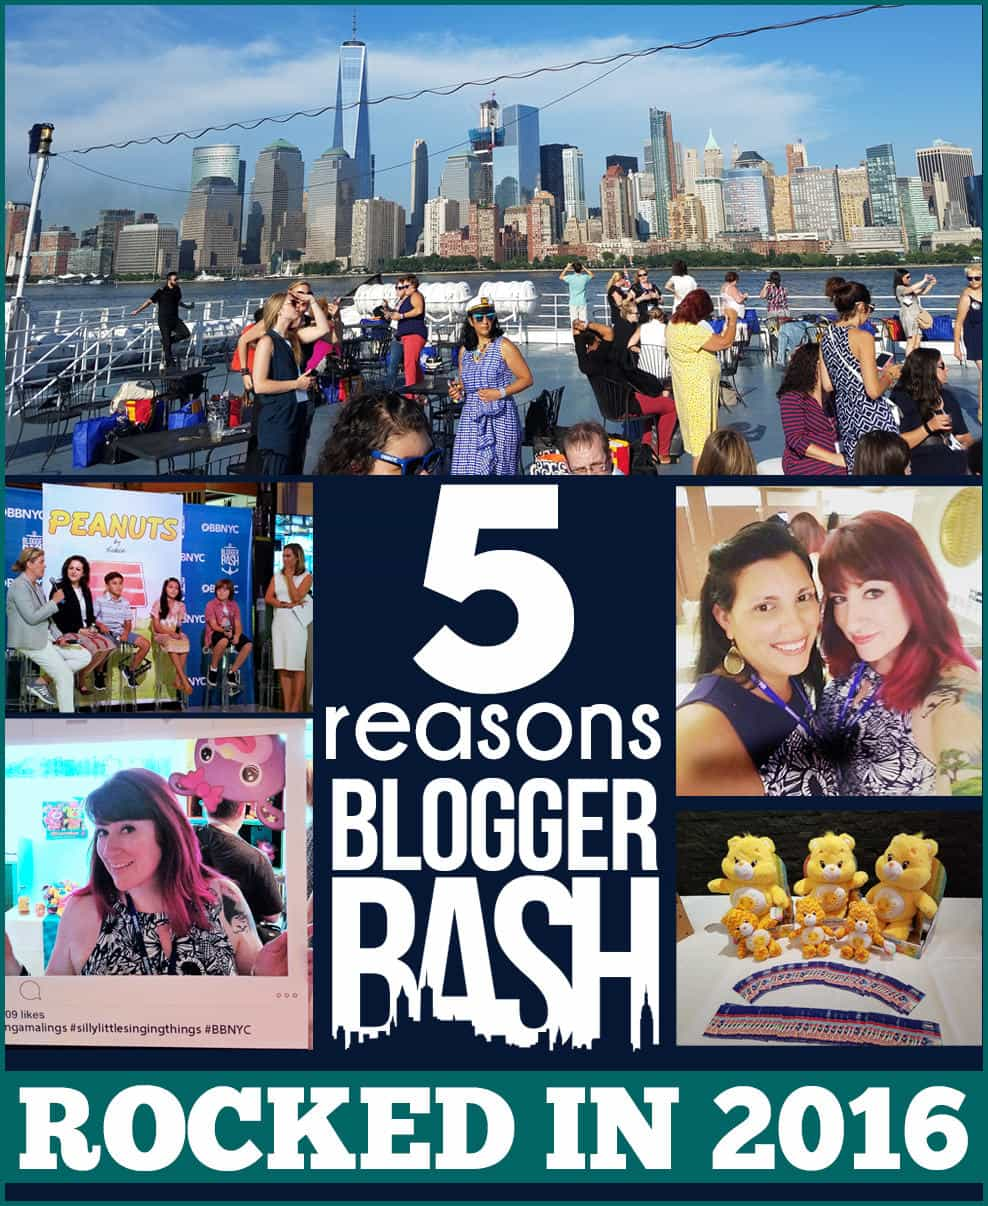 5 REASONS BLOGGER BASH ROCKED